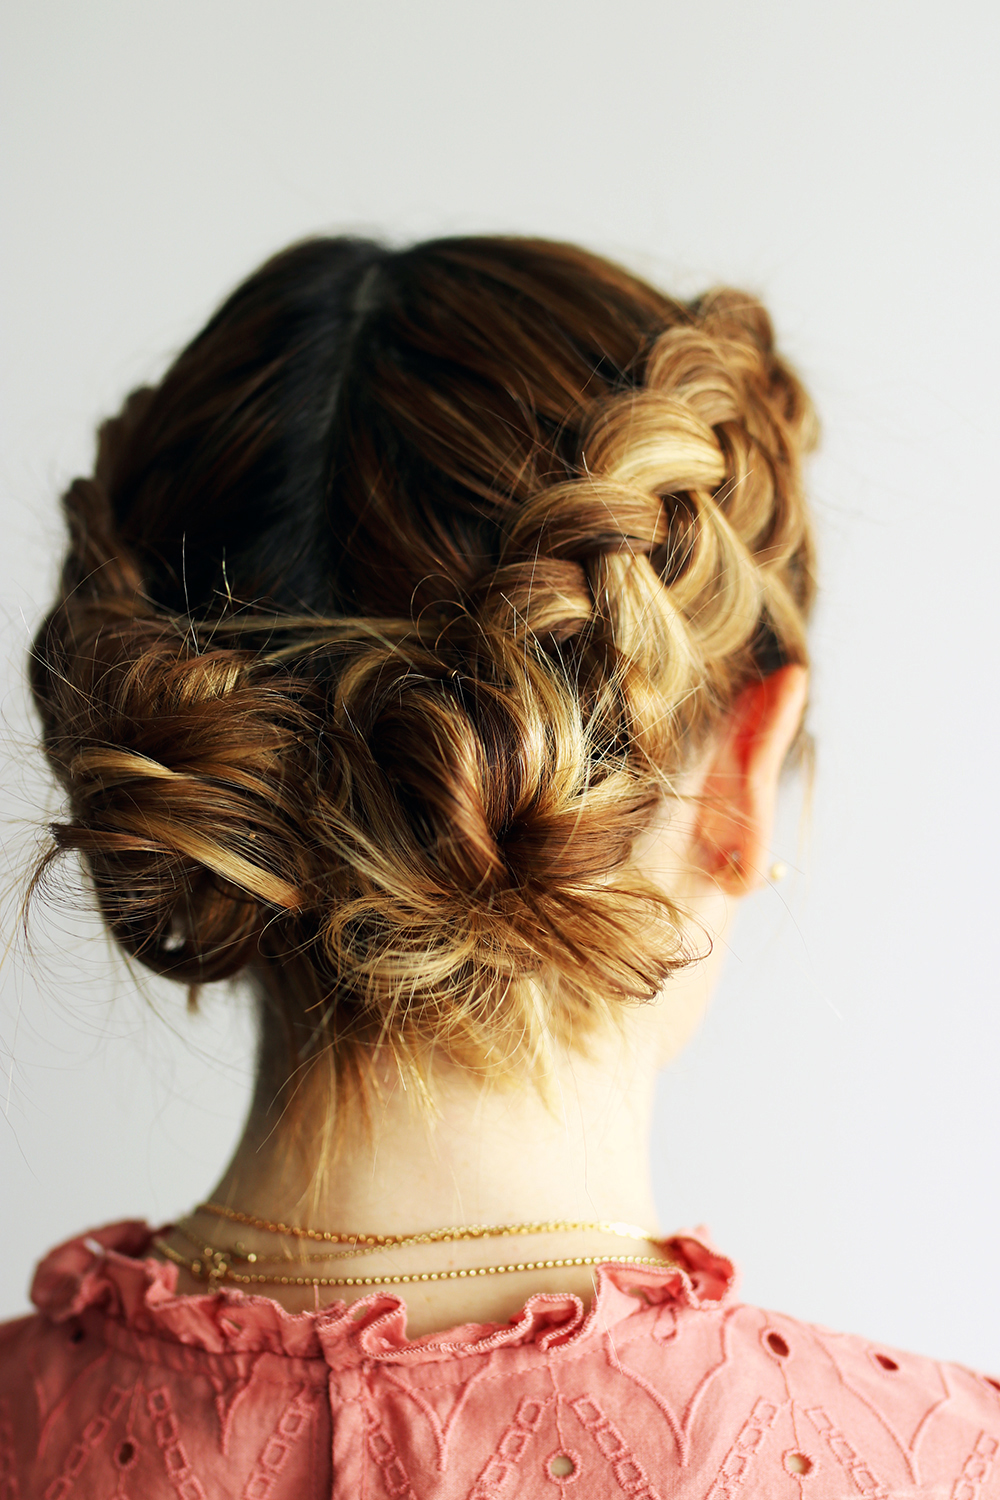 Diy File 3 Braided Hairstyles Perfect For Summer The Vault Files